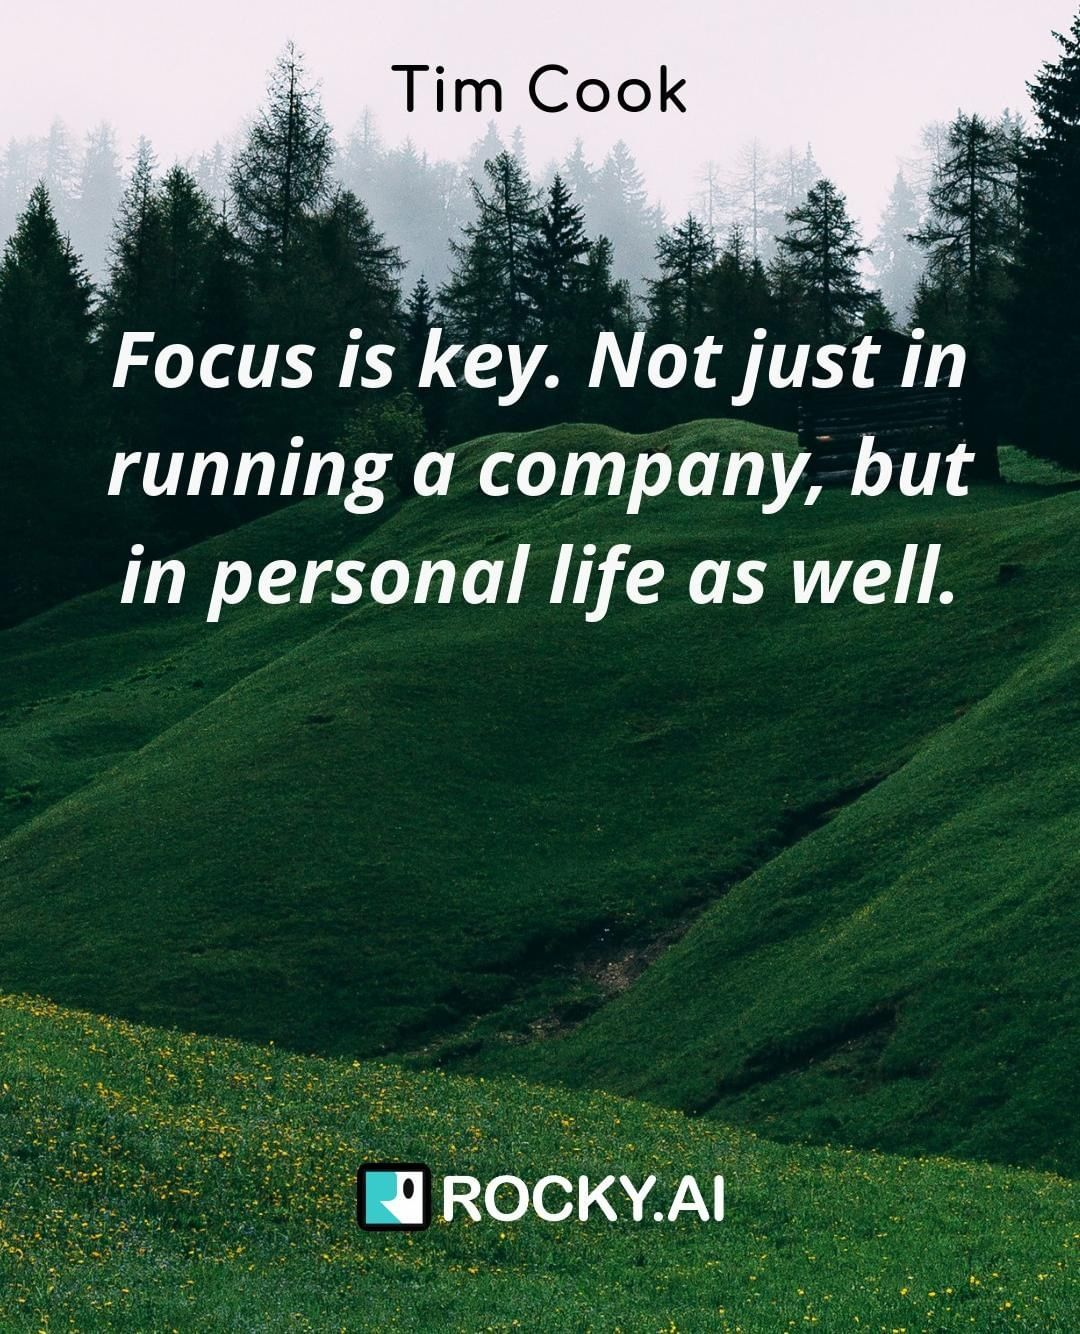 "What do you define as focus? ""Focus is key. Not just in running a company, but in personal life as well."" #focus #leadership #entrepreneur #business #success #inspiration #work #entrepreneurlife #entrepreneurship #businessowner #entrepreneurquotes #entrepreneurlifestyle #mindset #startuplife #goals #quoteoftheday #tech #startups #grind #leadershipdevelopment #personalgrowth #leadershipcoach #mindsetiseverything #conciousculture #alwayslearning #selfdevelopment #leadbyexample #businesscoach #femaleentrepreneur #lifecoach"